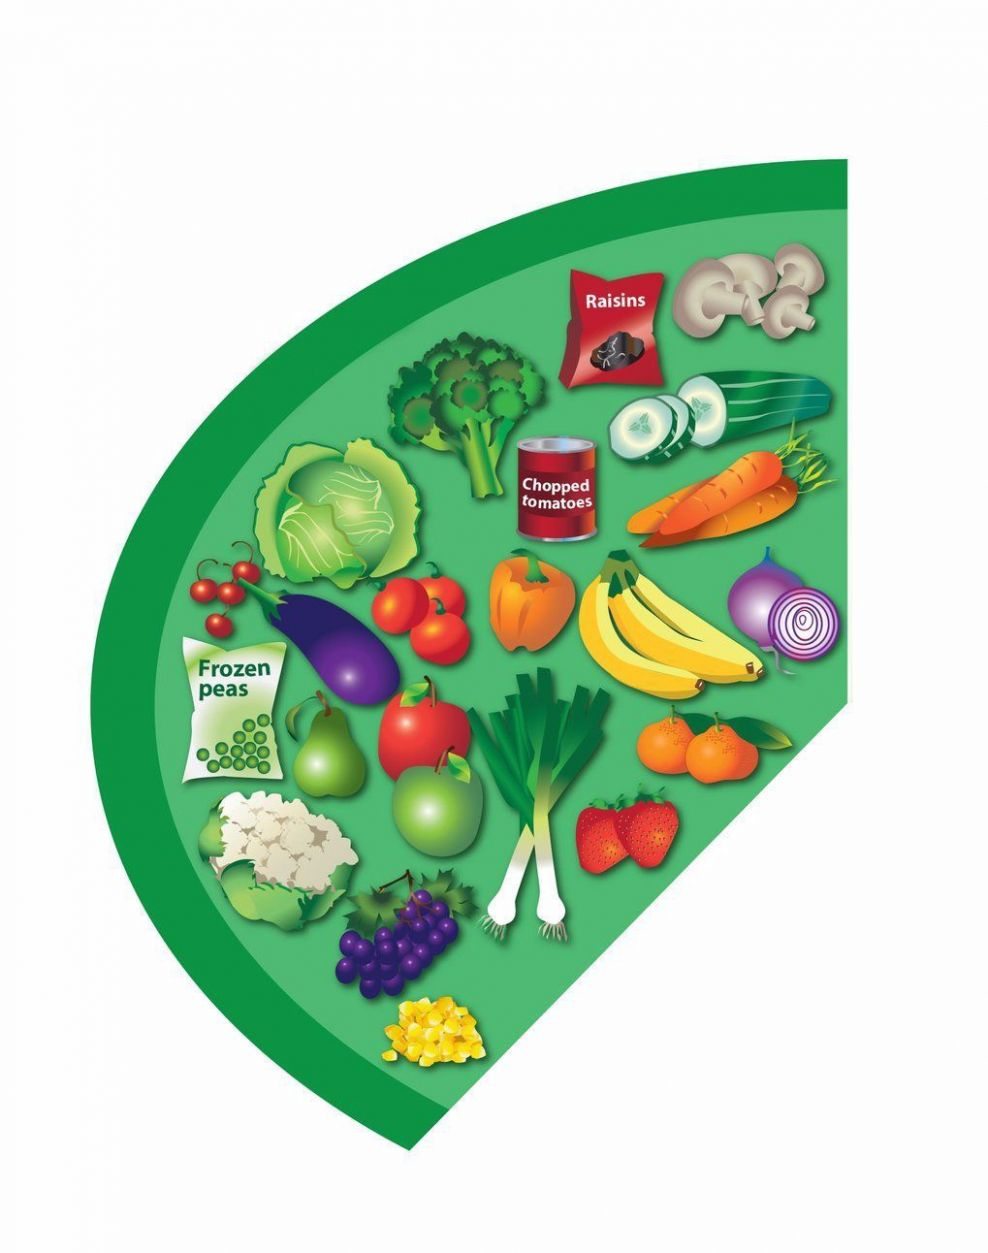 The Eatwell Guide - NHS in 8 | Healthy eating guide, Eating ..